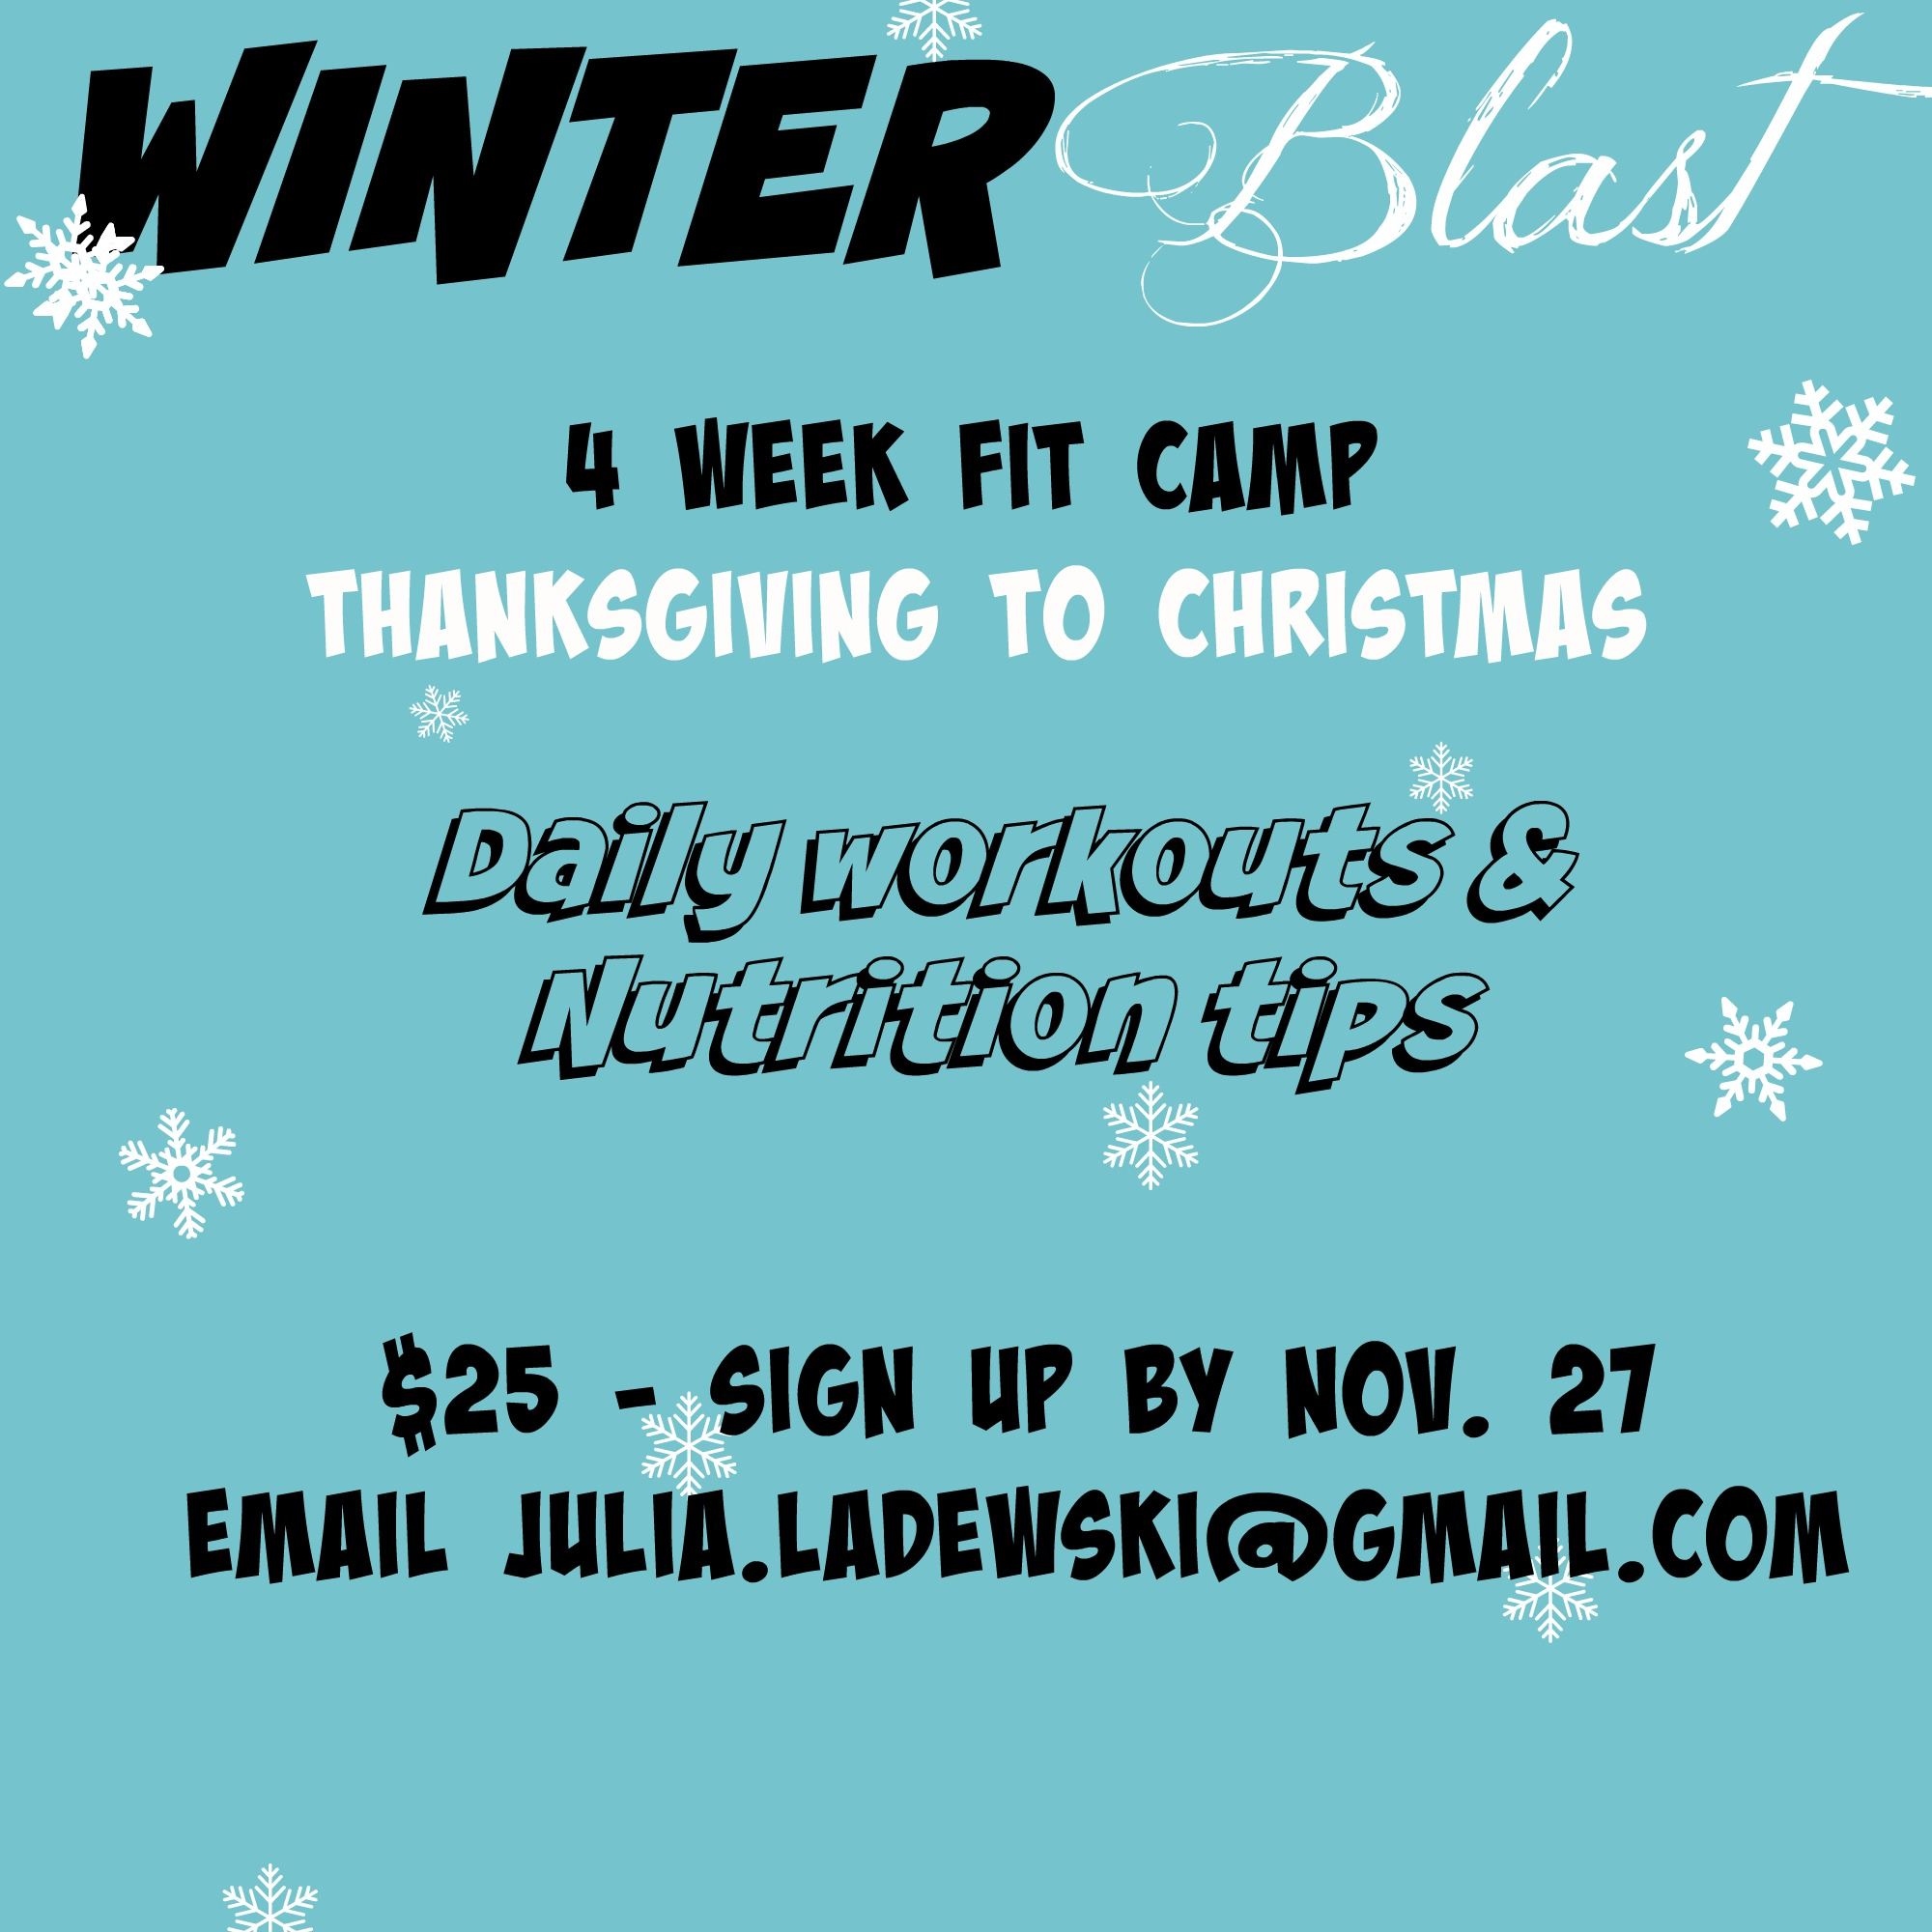 winter blast fit camp